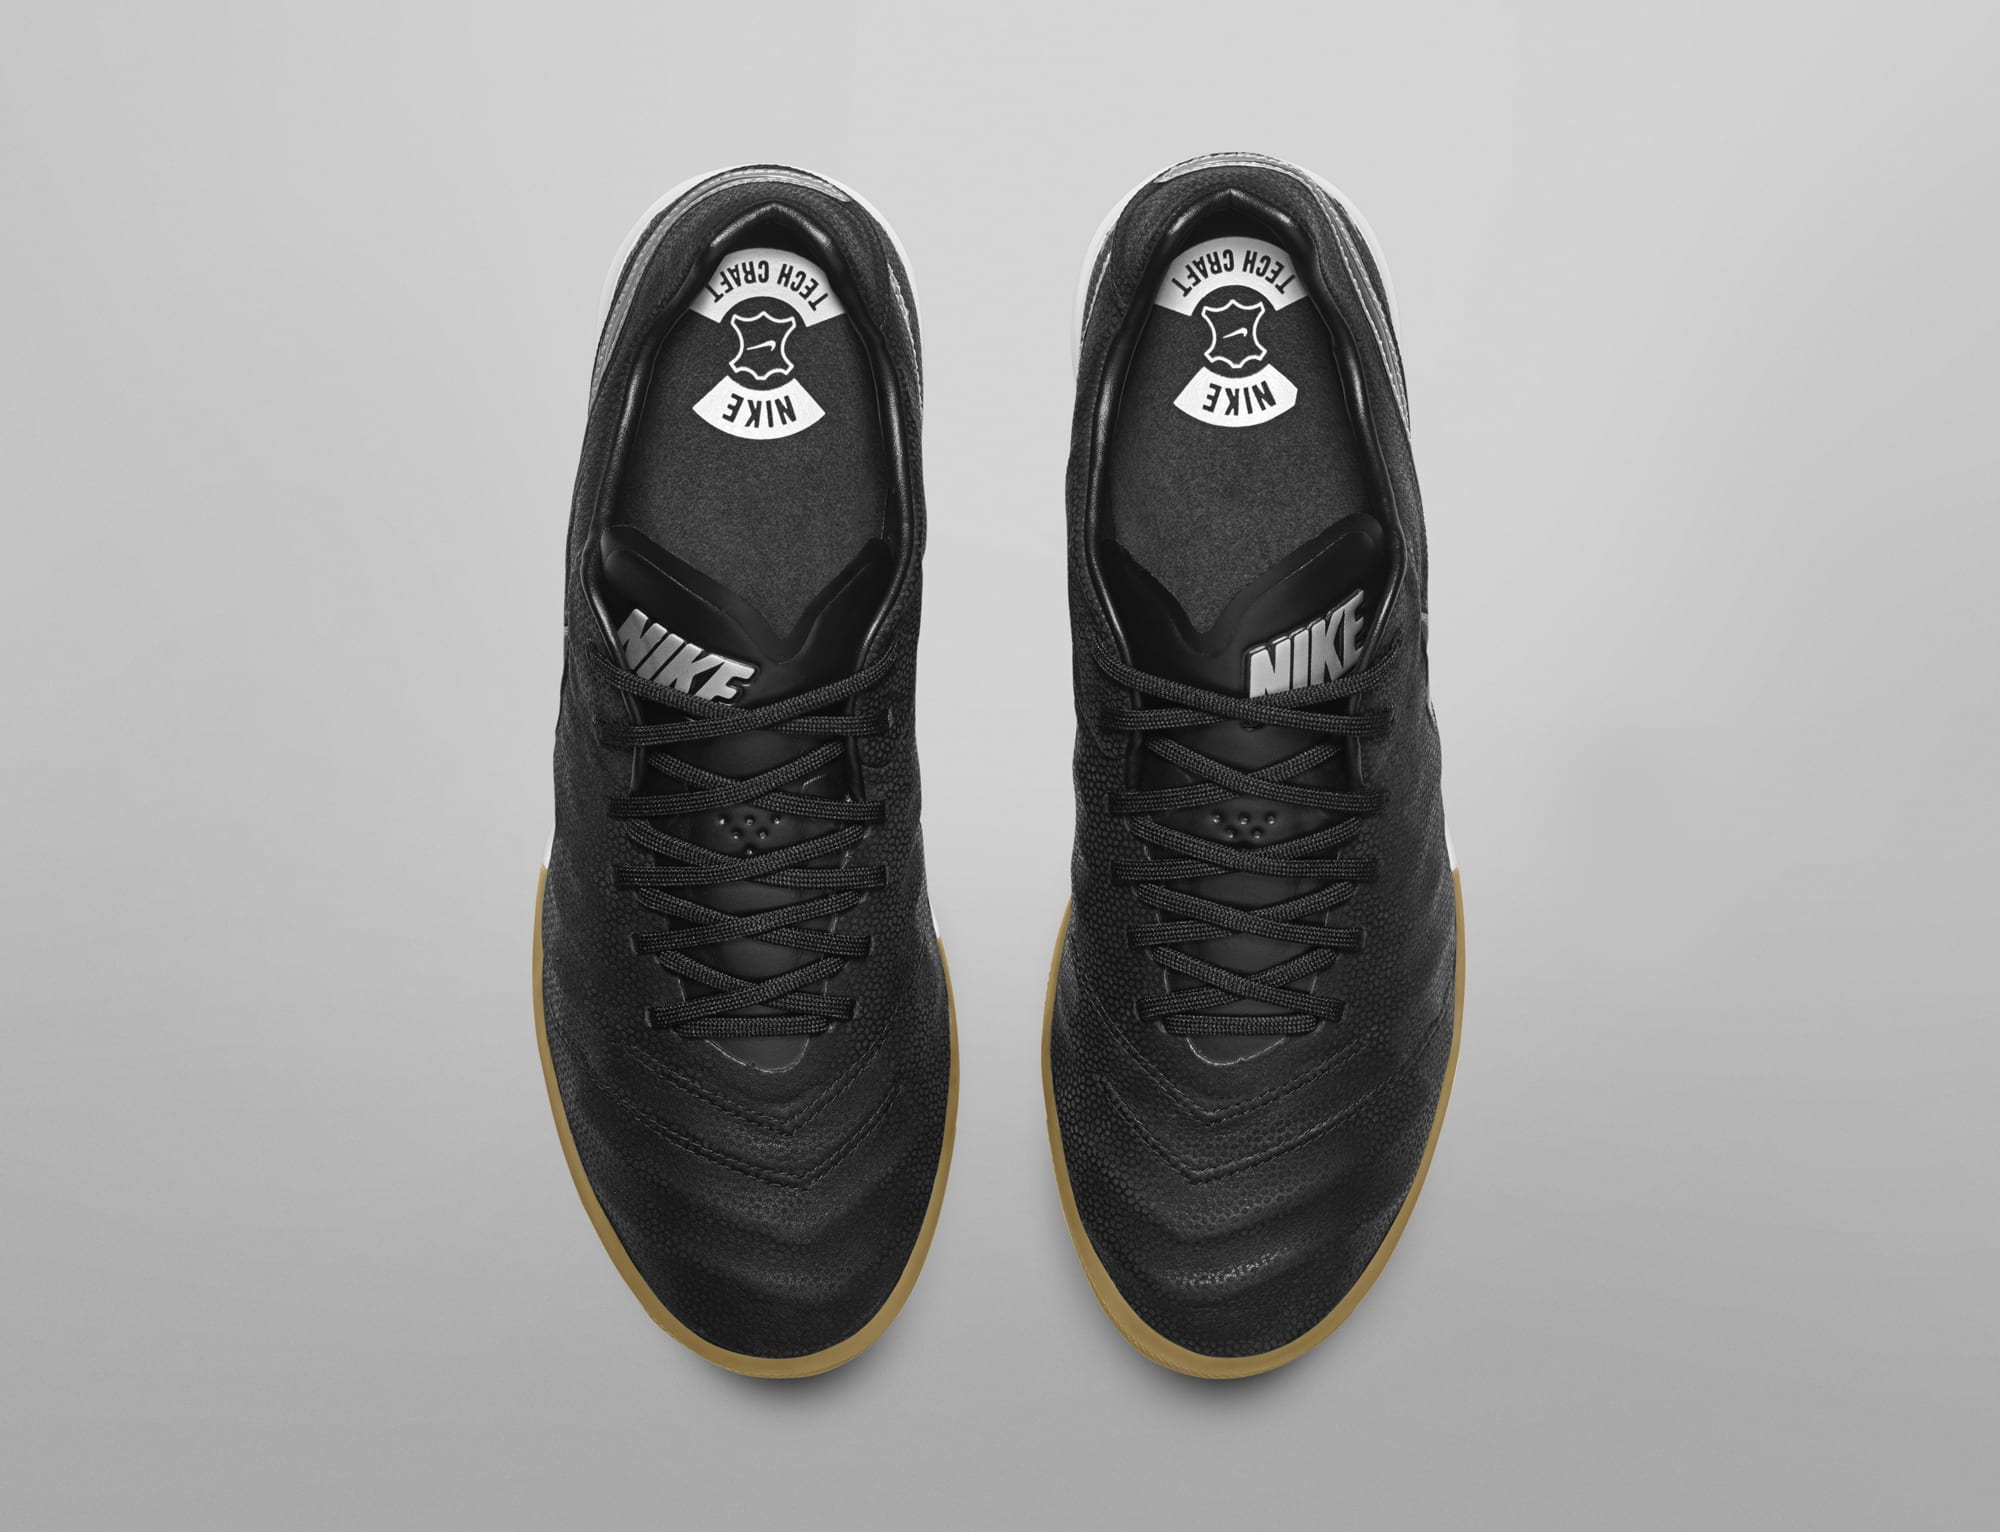 chaussures-football-nike-tiempox-tech-craft-img2